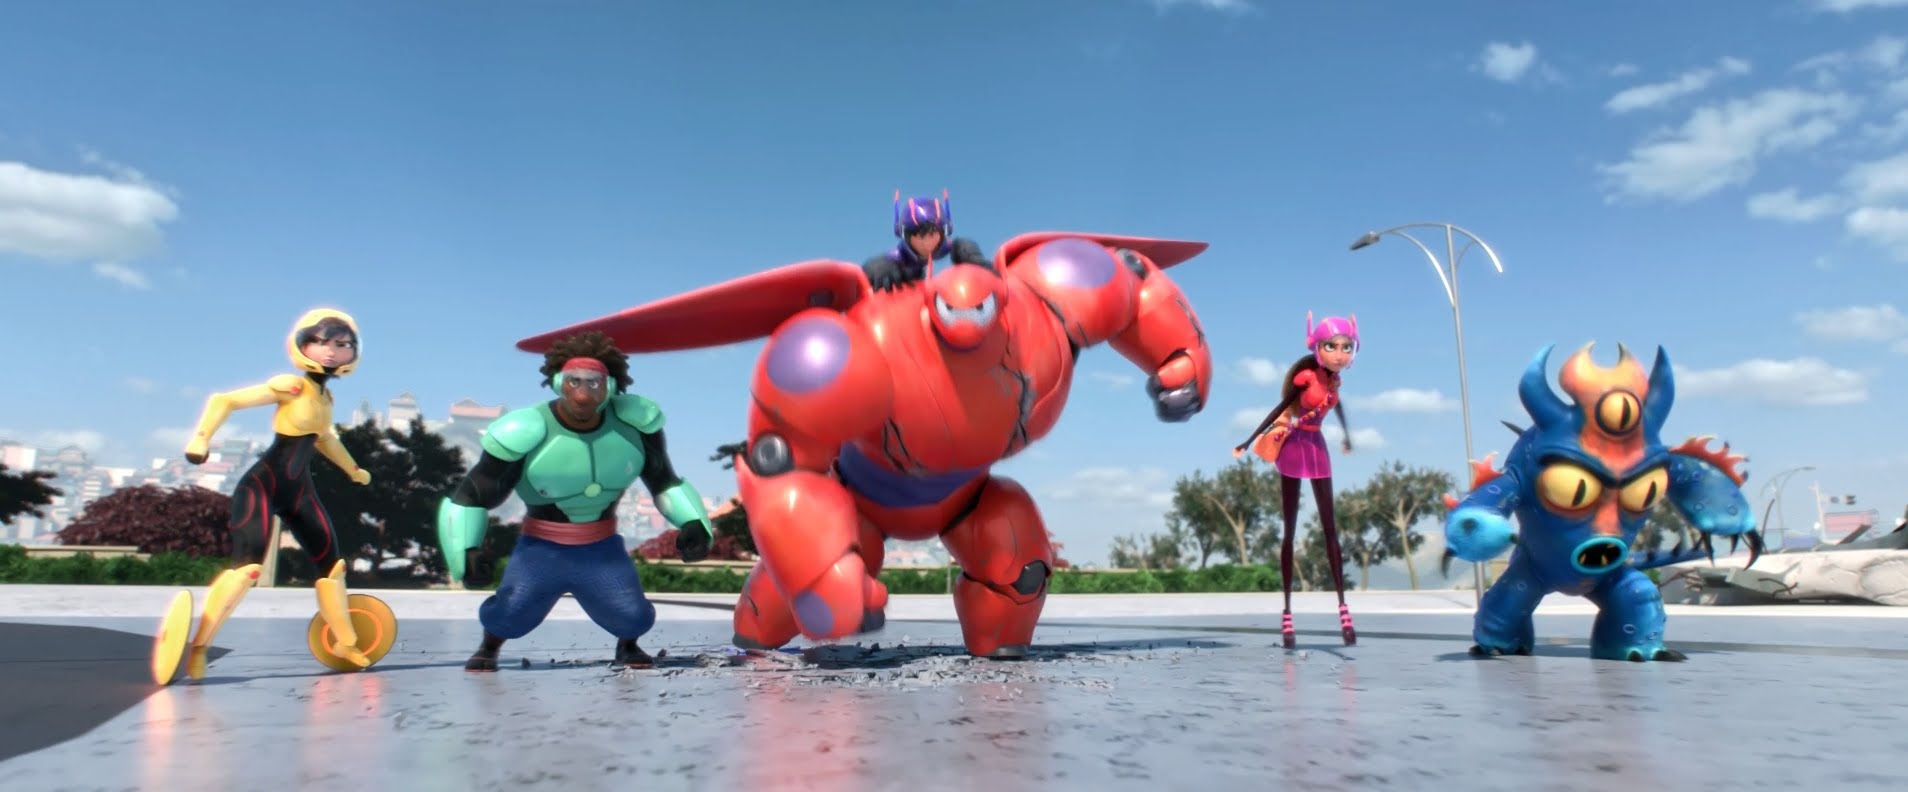 Big Hero 6 Backgrounds, Compatible - PC, Mobile, Gadgets| 1908x792 px